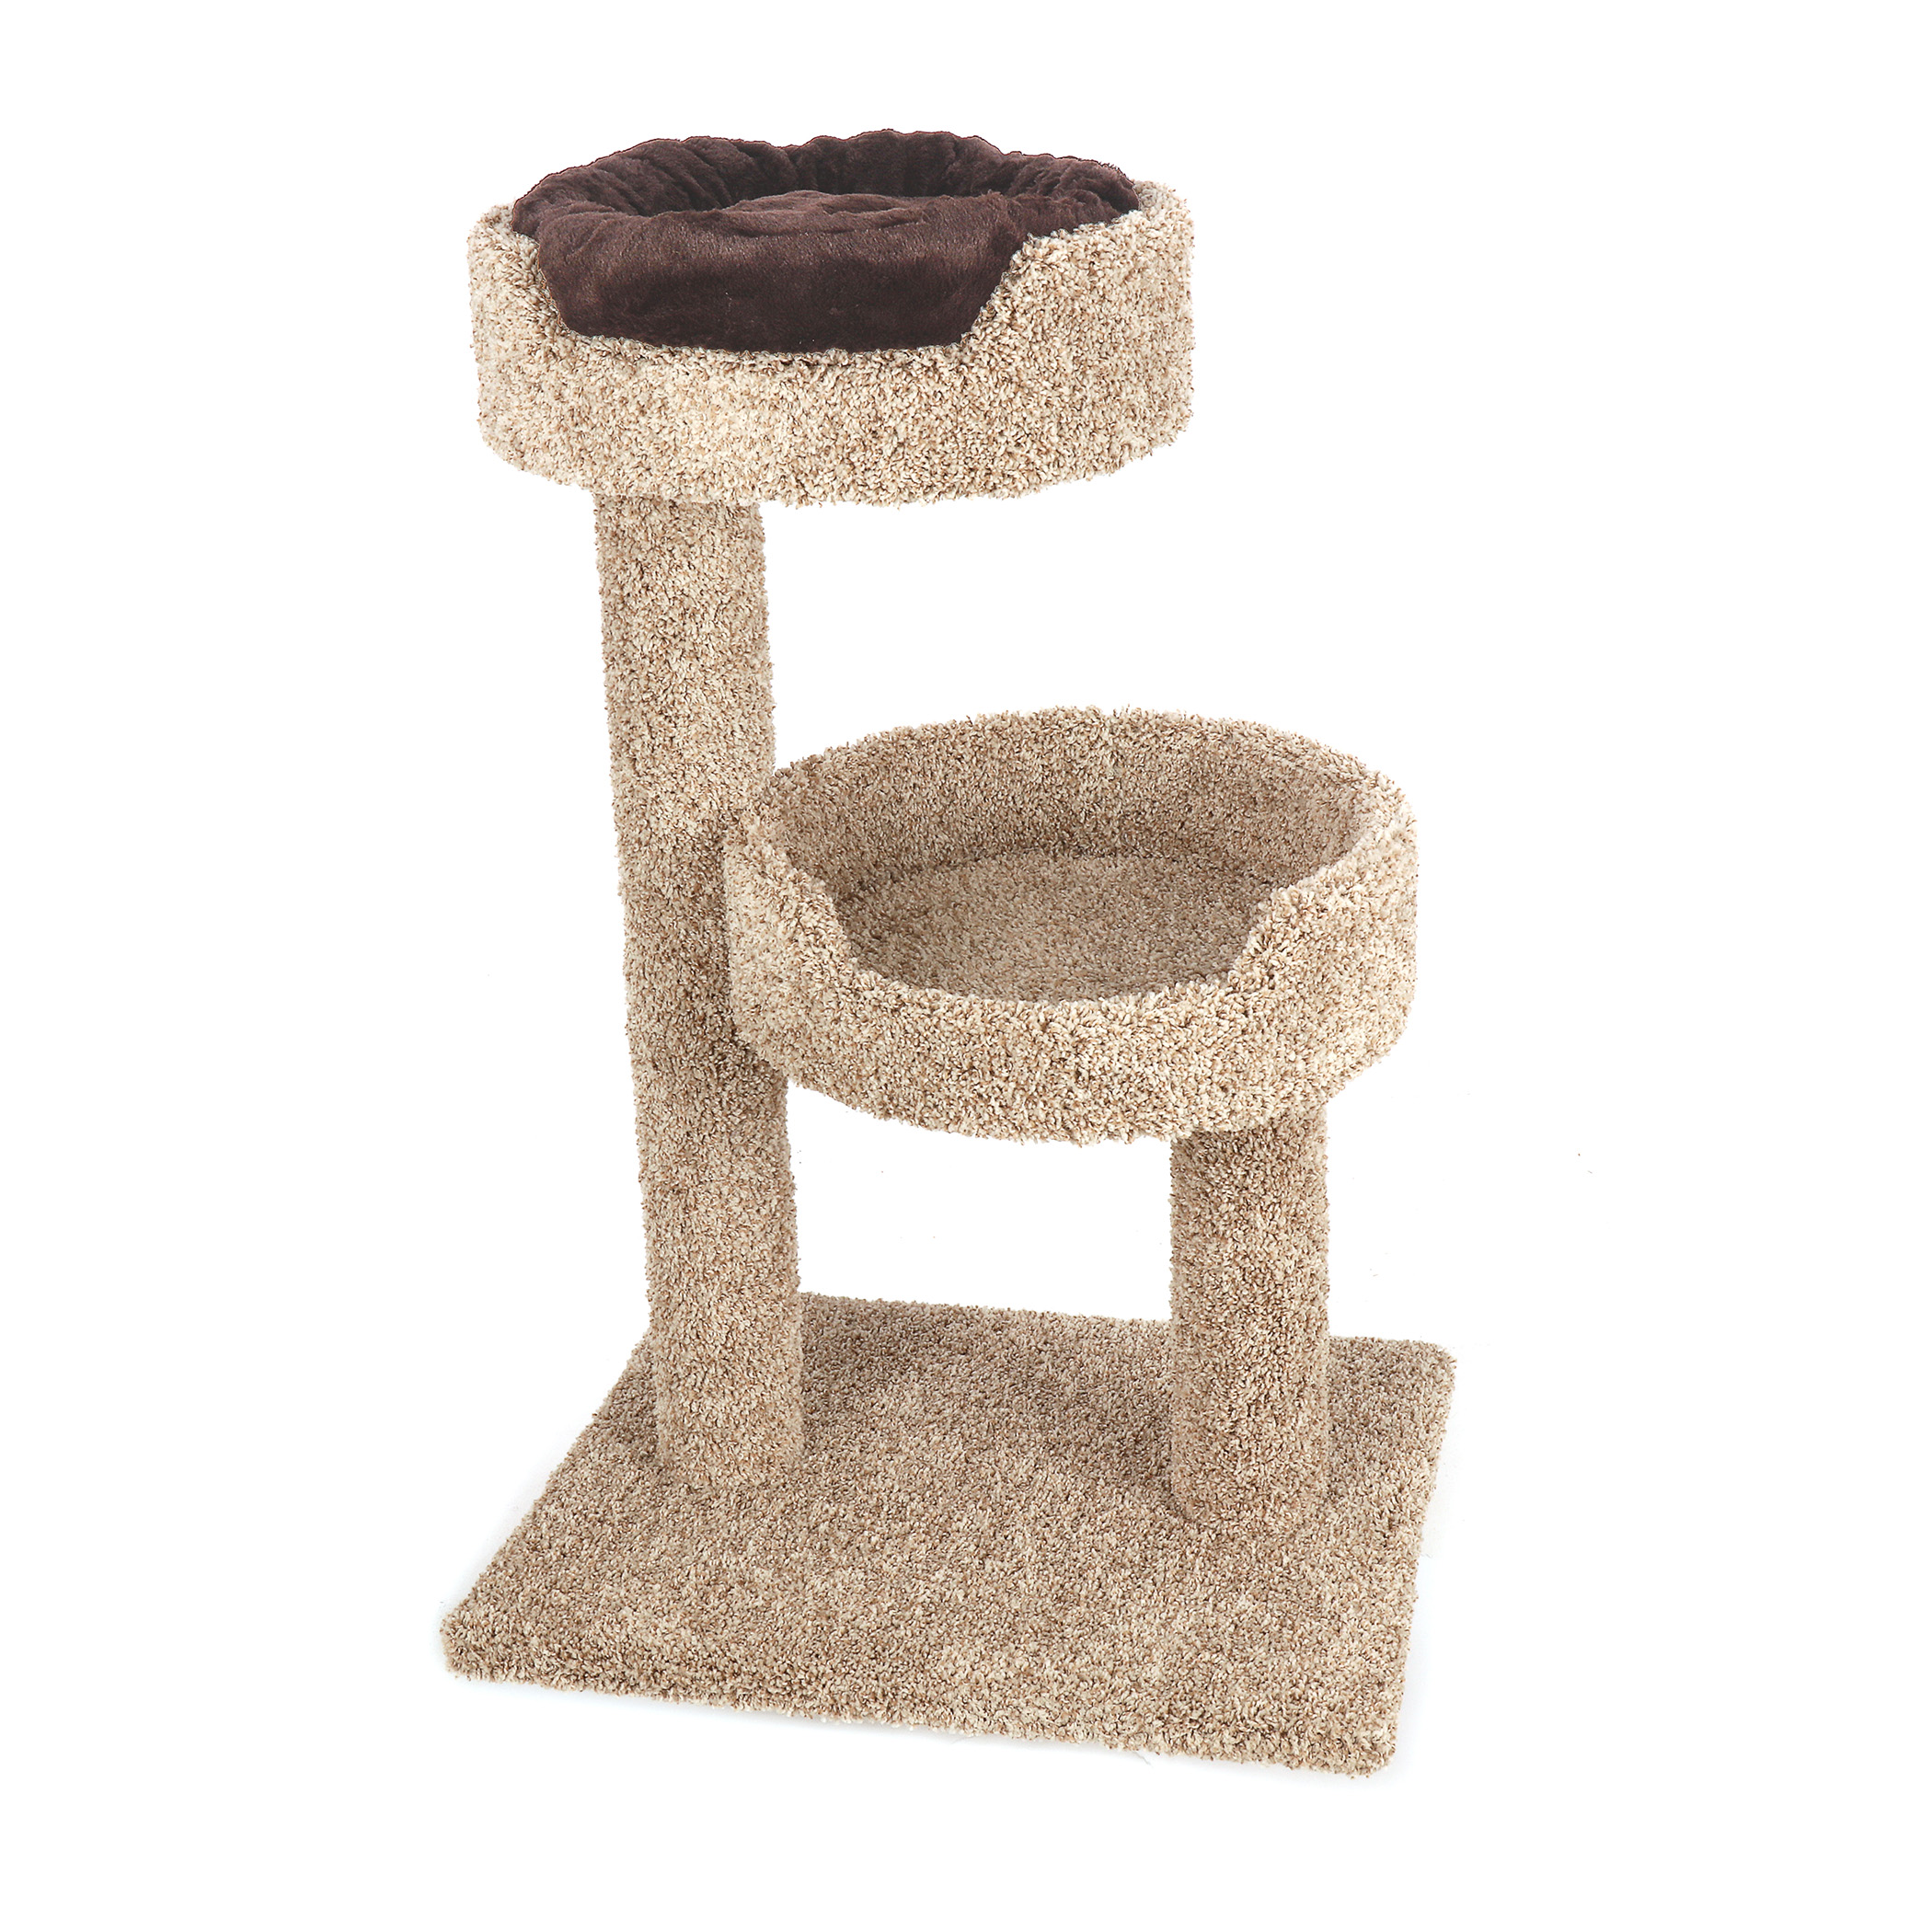 2 Story Perch w/ Donut Bed